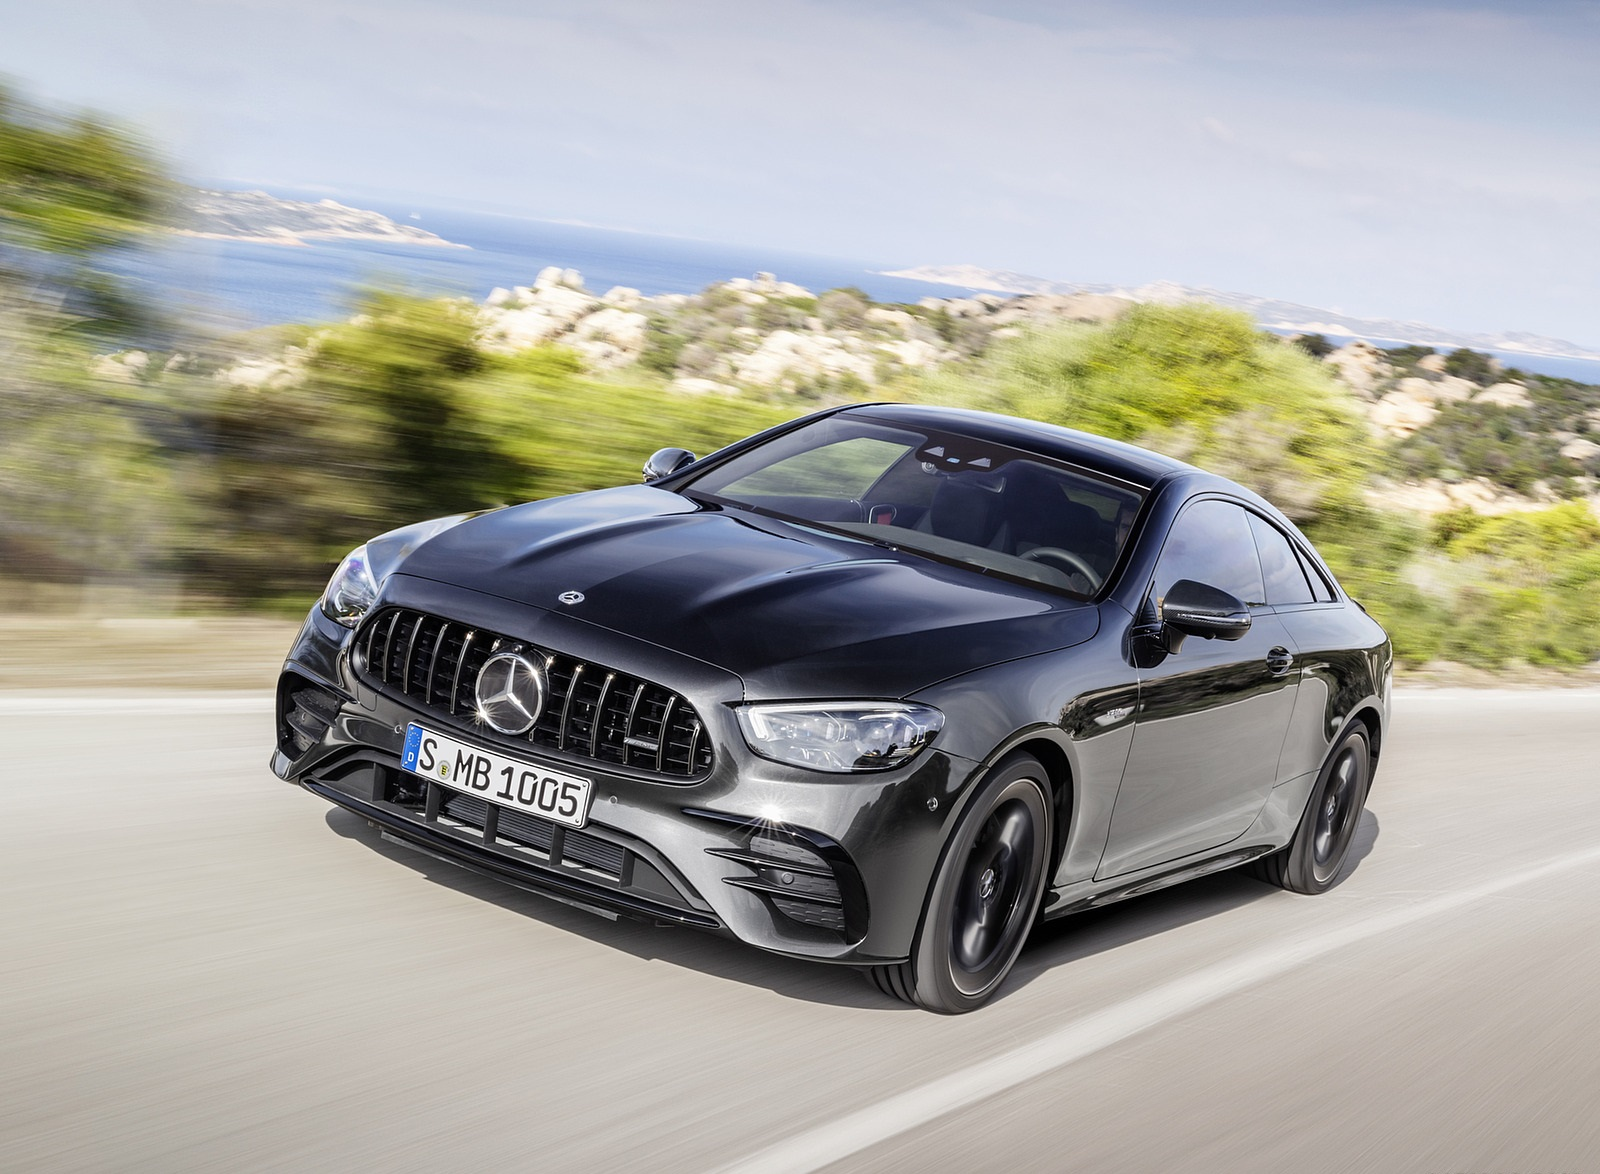 2021 Mercedes-AMG E 53 Coupe (Color: Graphite Grey Metallic) Front Three-Quarter Wallpapers (5)